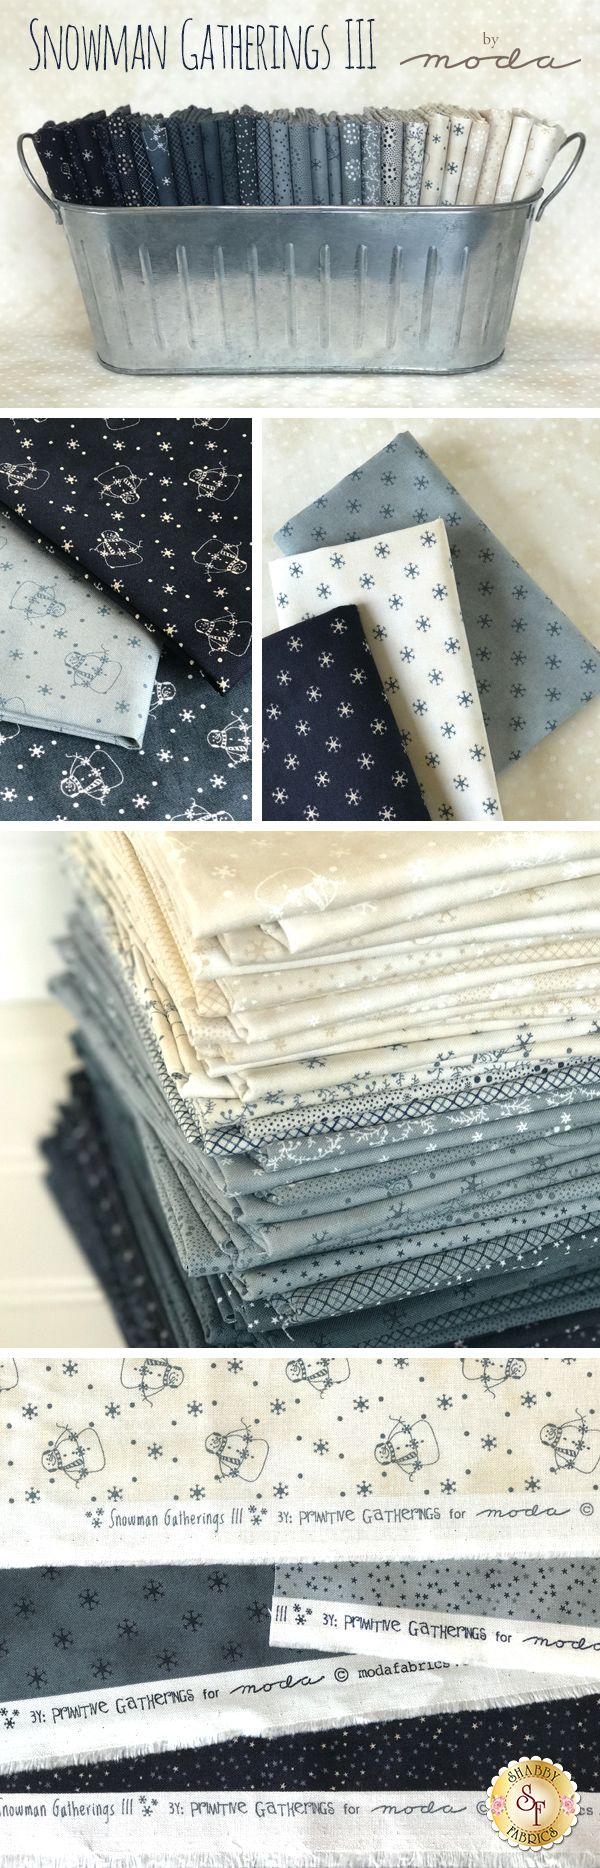 Snowman Gatherings III is a frosty winter collection by Primitive Gatherings for Moda Fabrics available at Shabby Fabrics